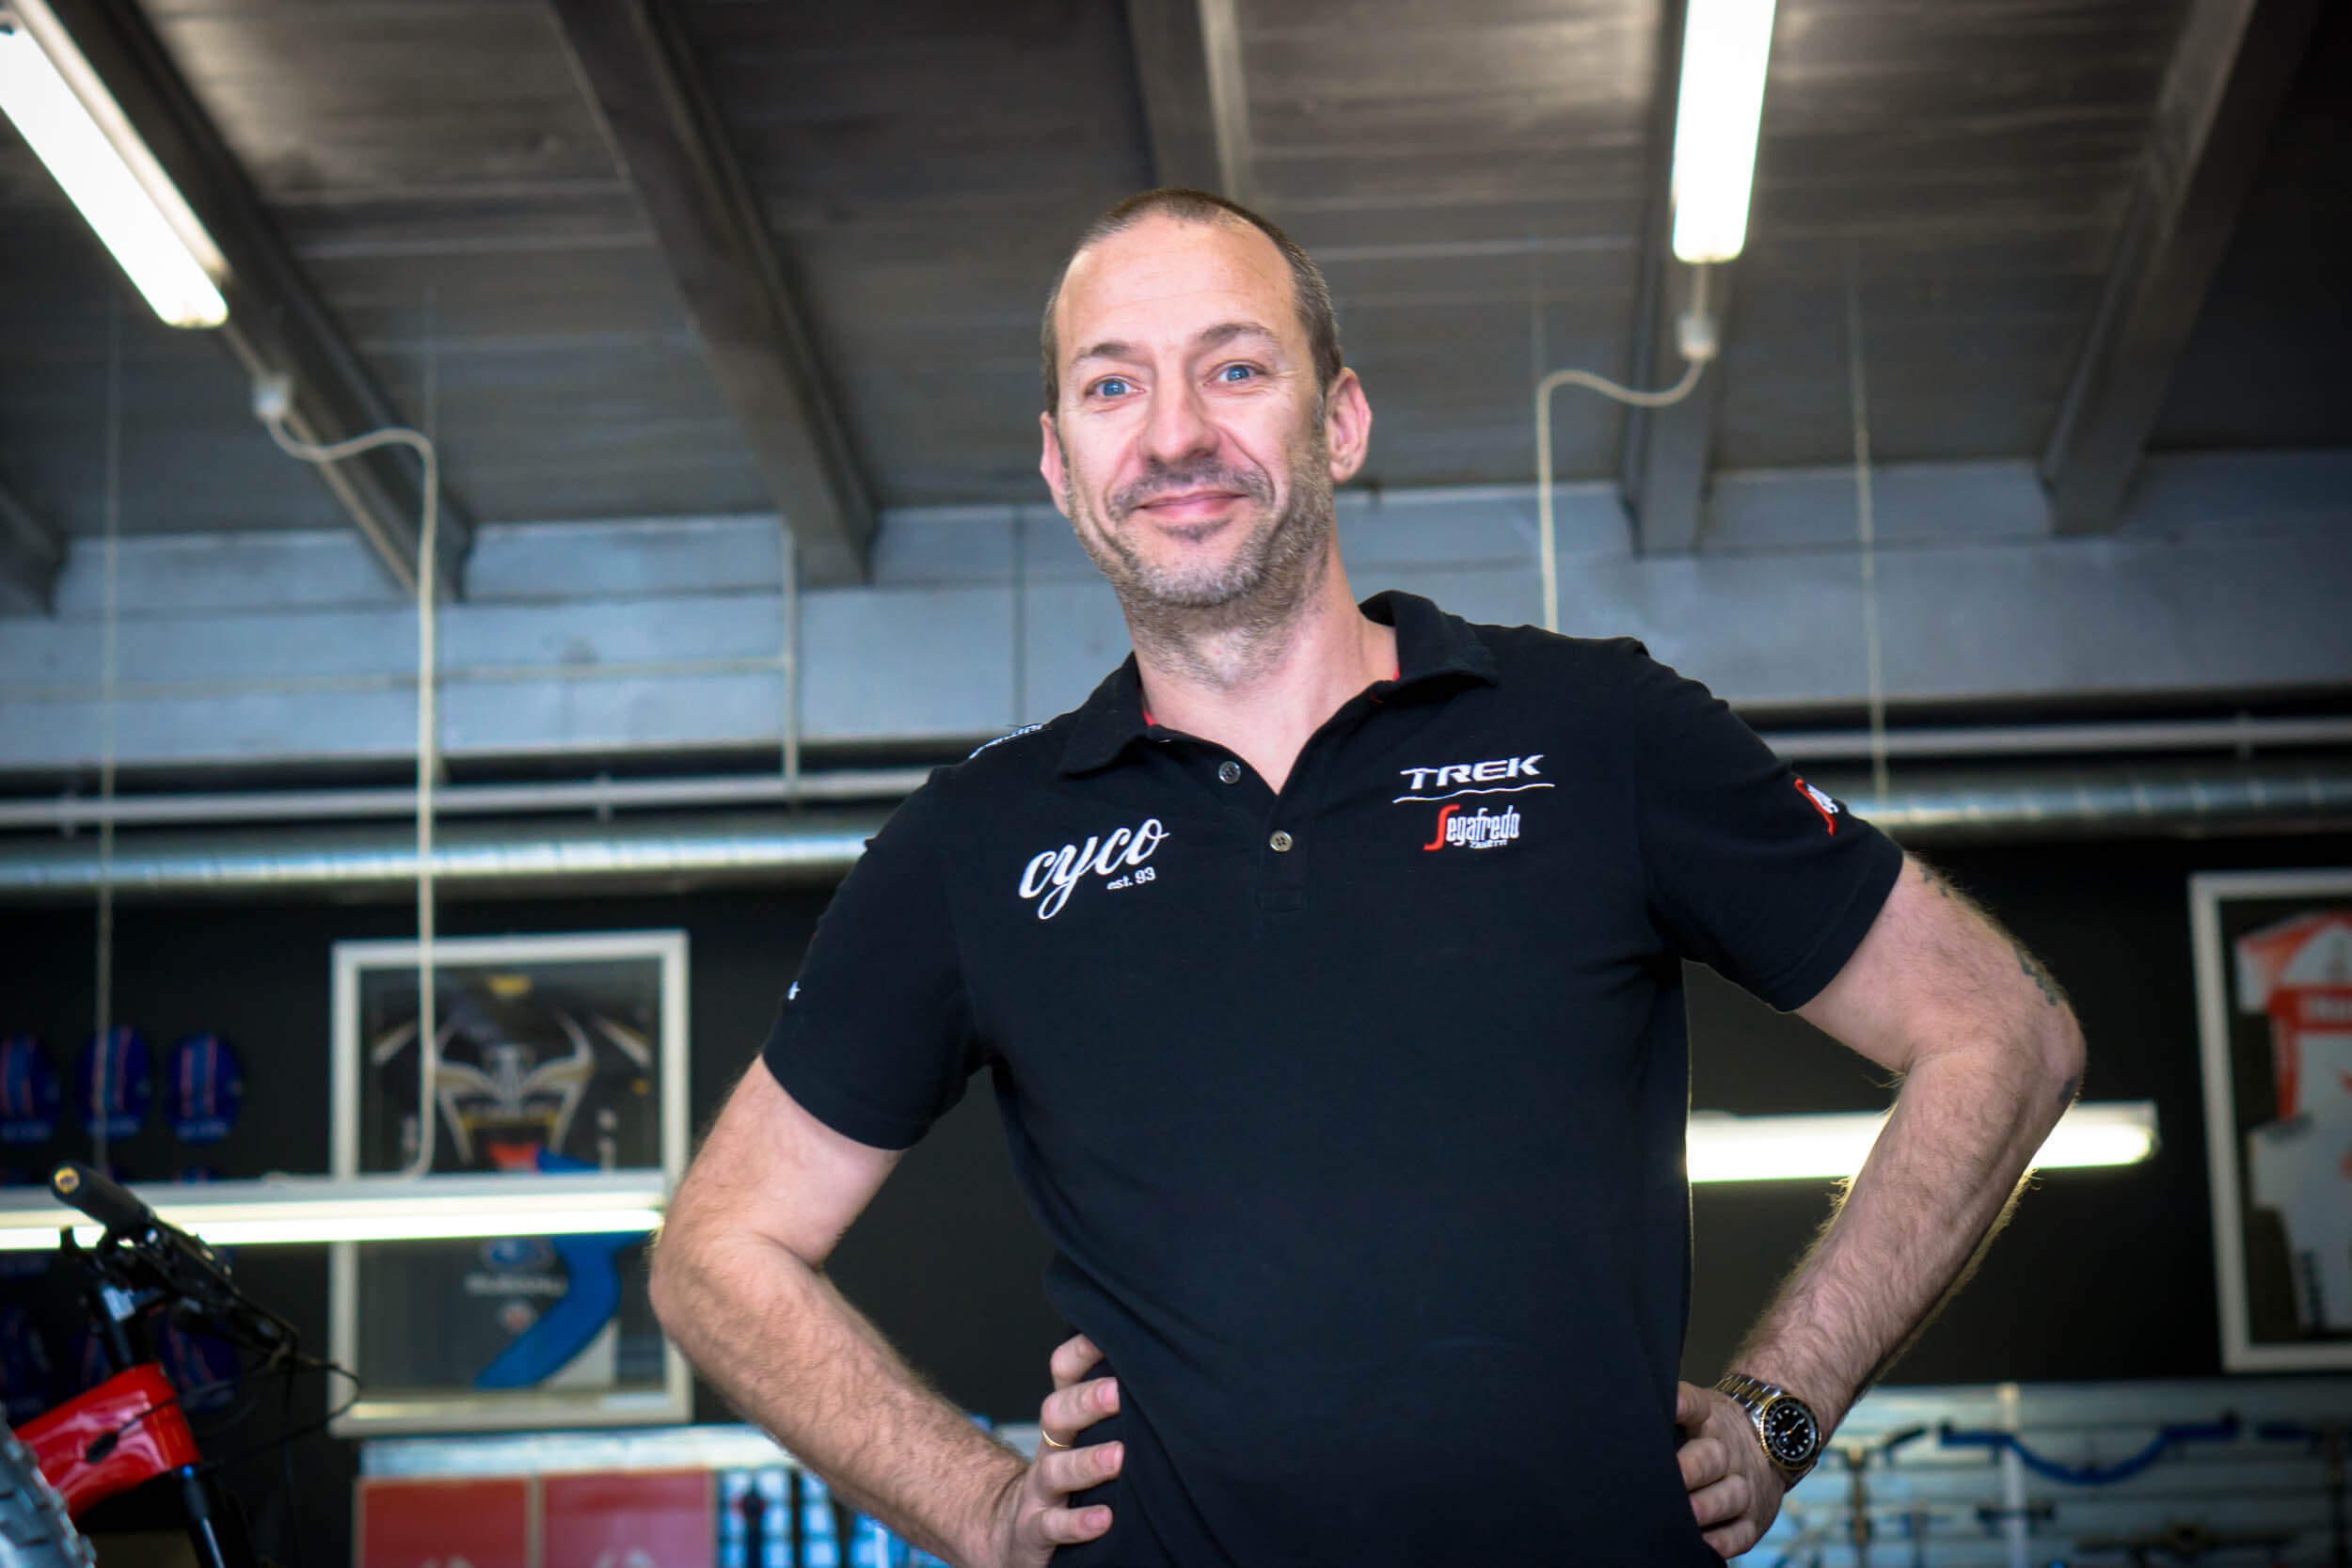 Darren Murray, Owner - My goal is to run a shop that is accessible for every cyclist to come, chat or chill with no pressure. I'm always up for a coffee and a yarn.